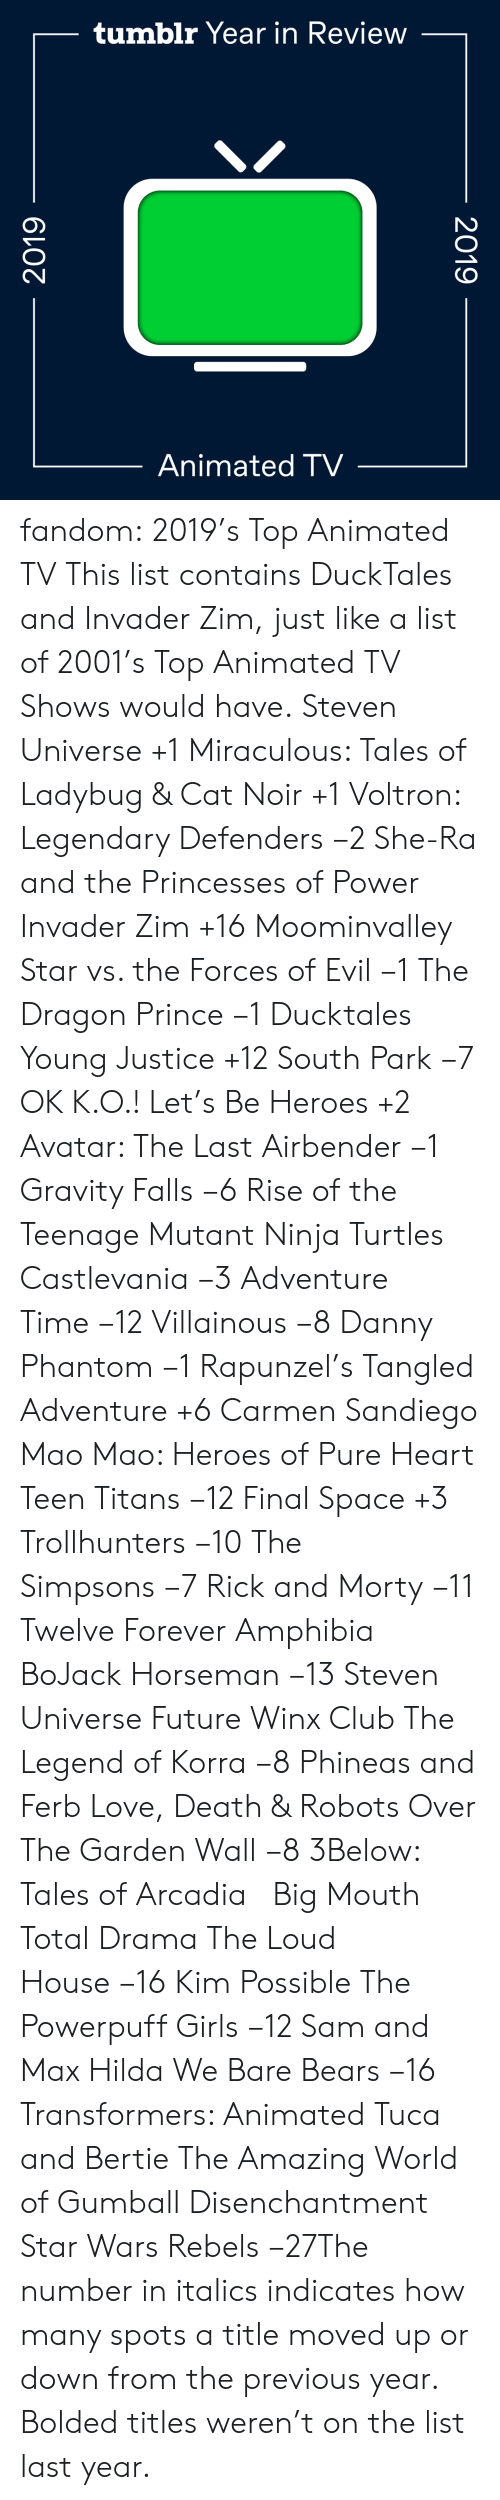 World Of: tumblr Year in Review  Animated TV  2019  2019 fandom:  2019's Top Animated TV  This list contains DuckTales and Invader Zim, just like a list of 2001's Top Animated TV Shows would have.  Steven Universe +1  Miraculous: Tales of Ladybug & Cat Noir +1  Voltron: Legendary Defenders −2  She-Ra and the Princesses of Power   Invader Zim +16  Moominvalley  Star vs. the Forces of Evil −1  The Dragon Prince −1  Ducktales  Young Justice +12  South Park −7  OK K.O.! Let's Be Heroes +2  Avatar: The Last Airbender −1  Gravity Falls −6  Rise of the Teenage Mutant Ninja Turtles  Castlevania −3  Adventure Time −12  Villainous −8  Danny Phantom −1  Rapunzel's Tangled Adventure +6  Carmen Sandiego  Mao Mao: Heroes of Pure Heart  Teen Titans −12  Final Space +3  Trollhunters −10  The Simpsons −7  Rick and Morty −11  Twelve Forever  Amphibia  BoJack Horseman −13  Steven Universe Future  Winx Club  The Legend of Korra −8  Phineas and Ferb  Love, Death & Robots  Over The Garden Wall −8  3Below: Tales of Arcadia    Big Mouth  Total Drama  The Loud House −16  Kim Possible  The Powerpuff Girls −12  Sam and Max  Hilda  We Bare Bears −16  Transformers: Animated  Tuca and Bertie  The Amazing World of Gumball  Disenchantment Star Wars Rebels −27The number in italics indicates how many spots a title moved up or down from the previous year. Bolded titles weren't on the list last year.